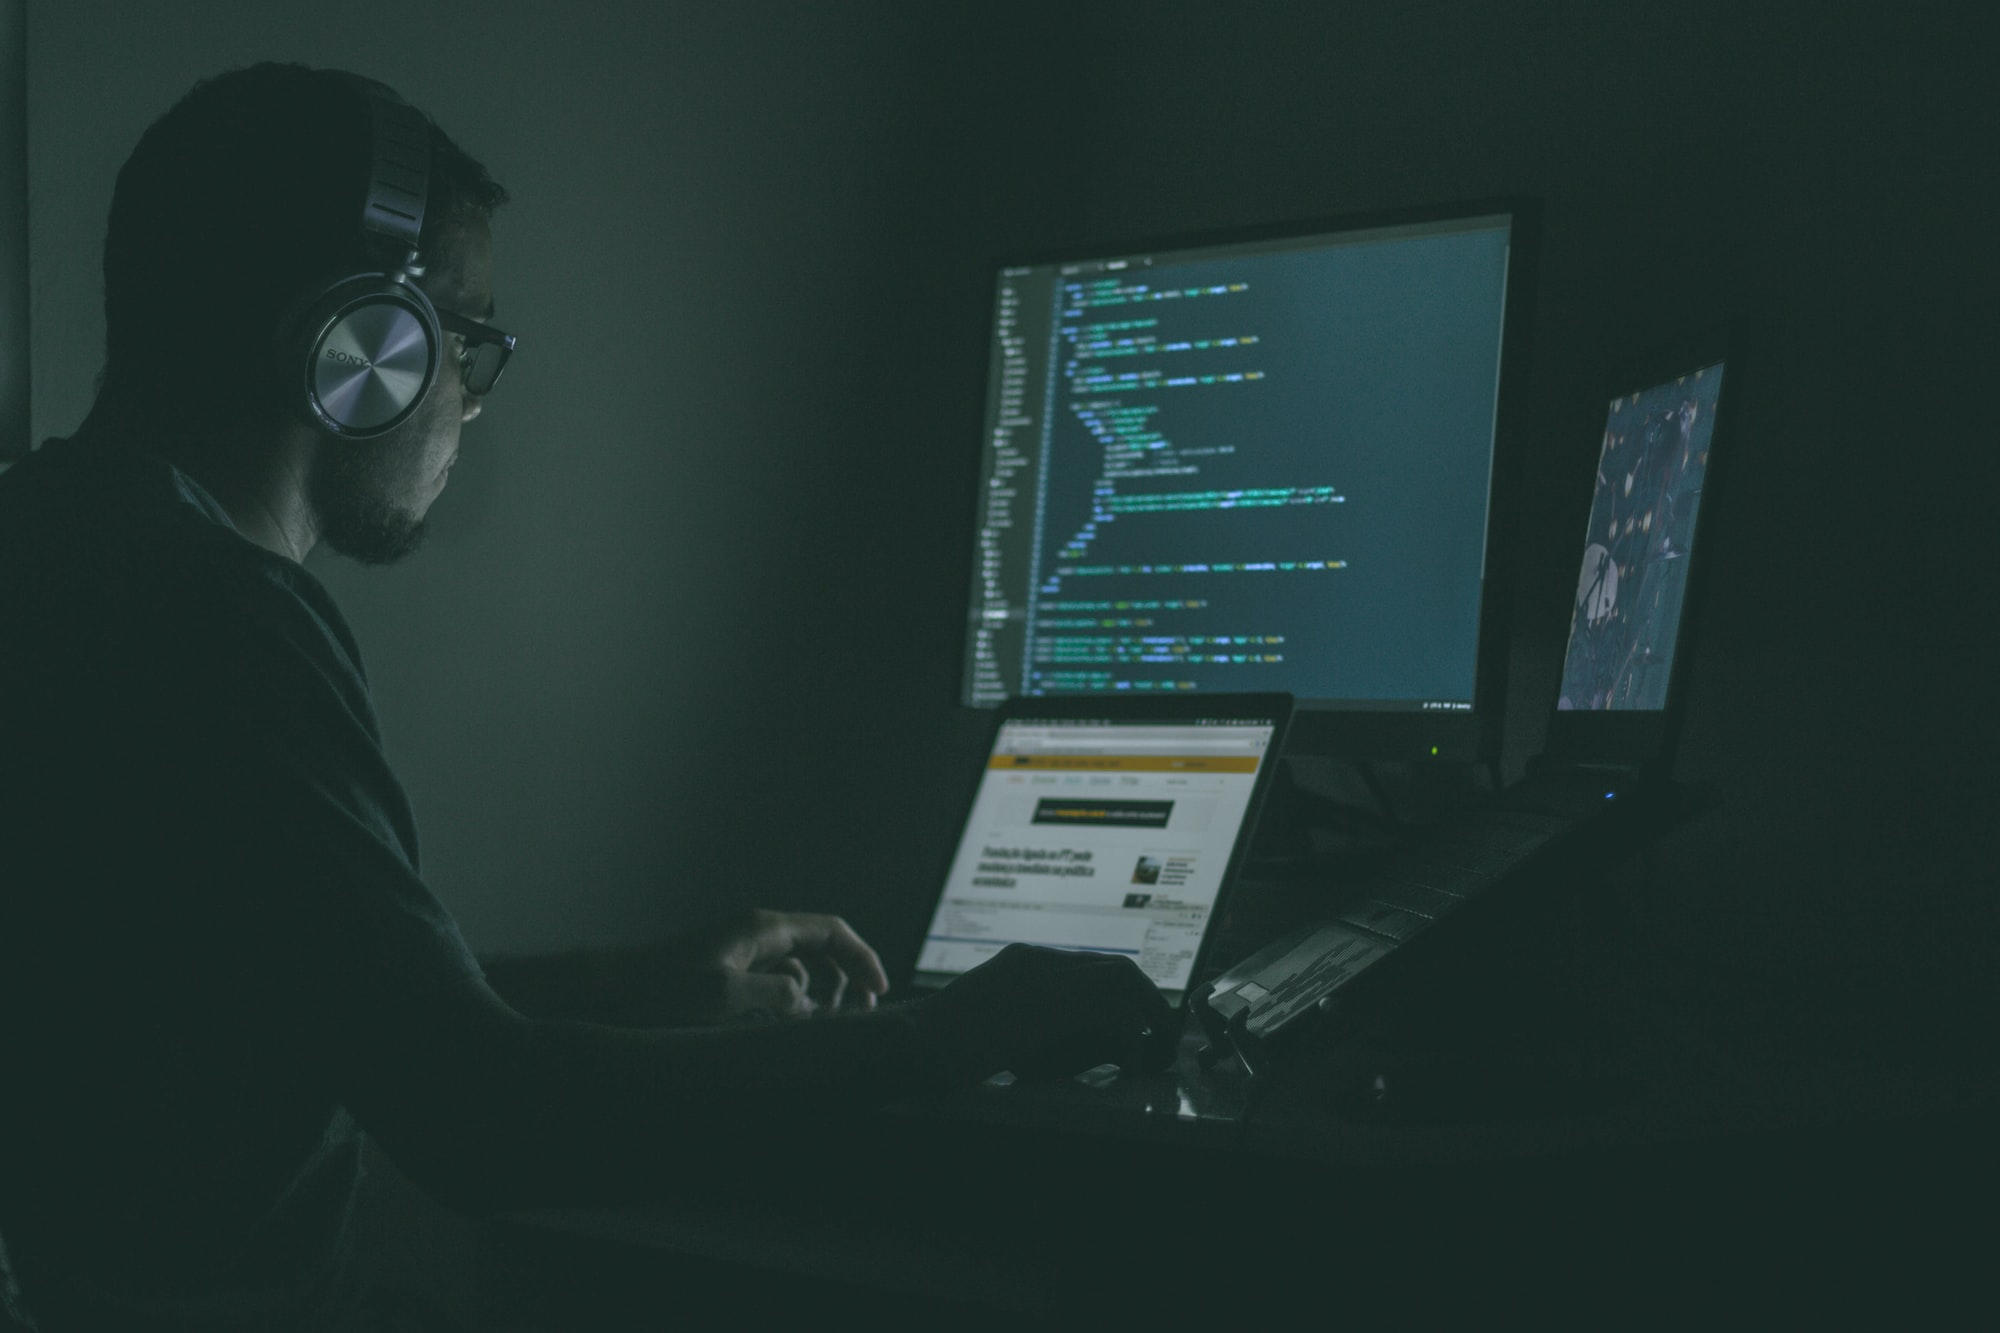 I want to become a professional hacker but can't find the right resources.